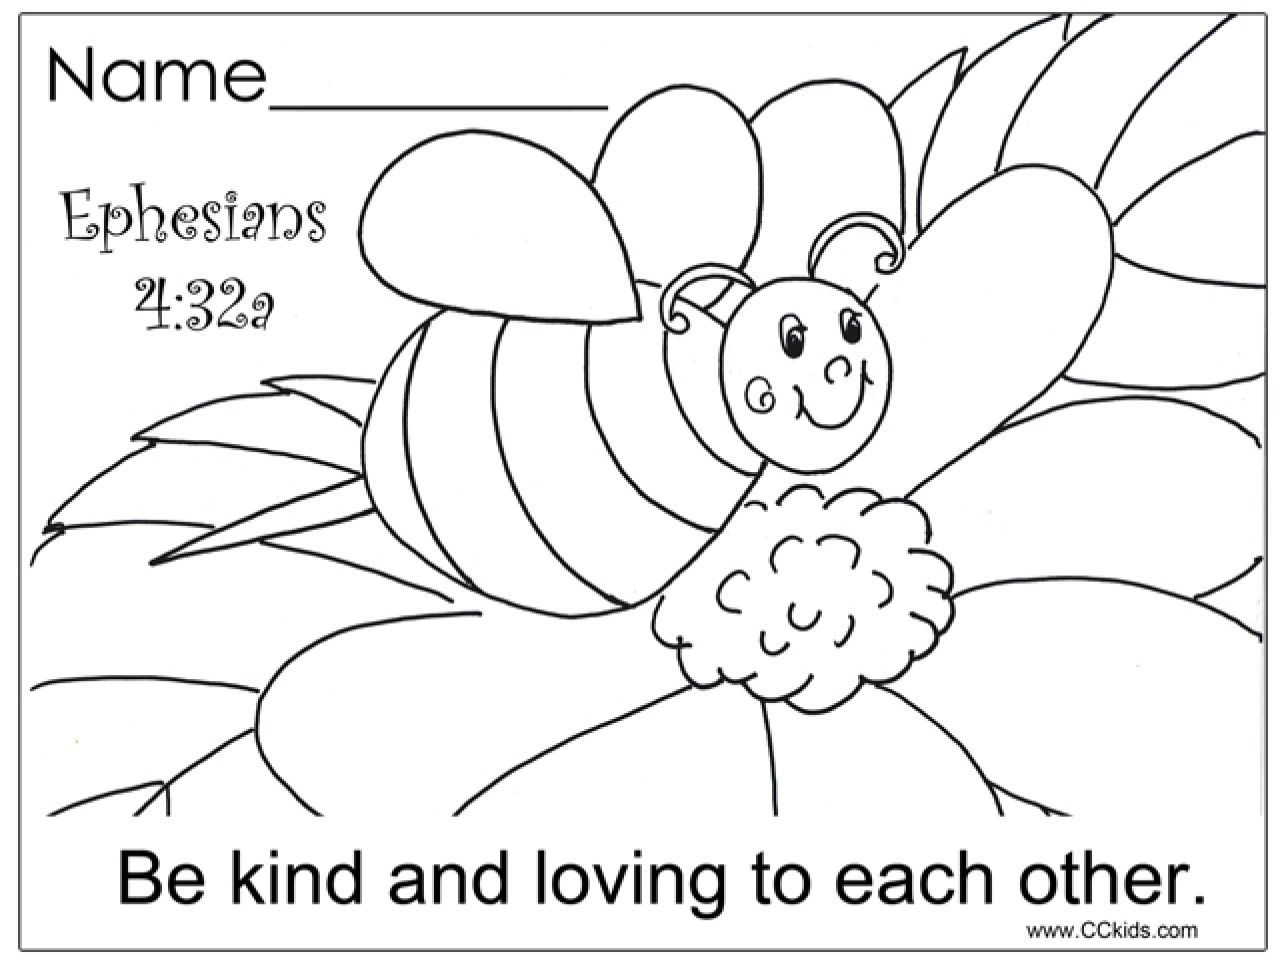 Image Result For Ephesians 4 32 Color Pages